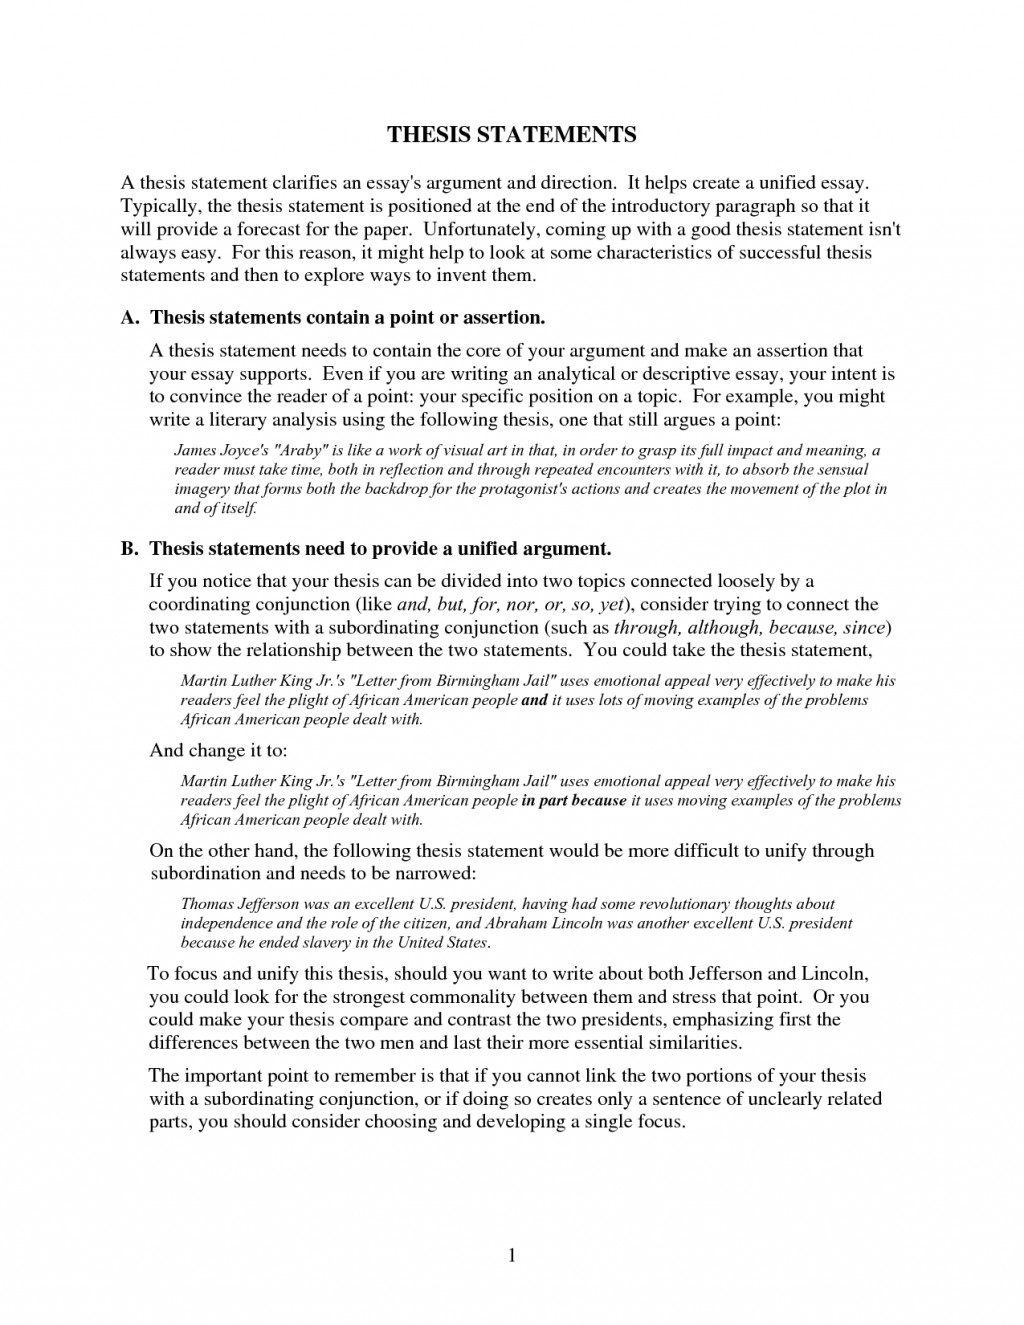 013 Essay Example An Effective Thesis In Argumentative Frightening Must I Present Both Sides Of The Issue Brainly Large